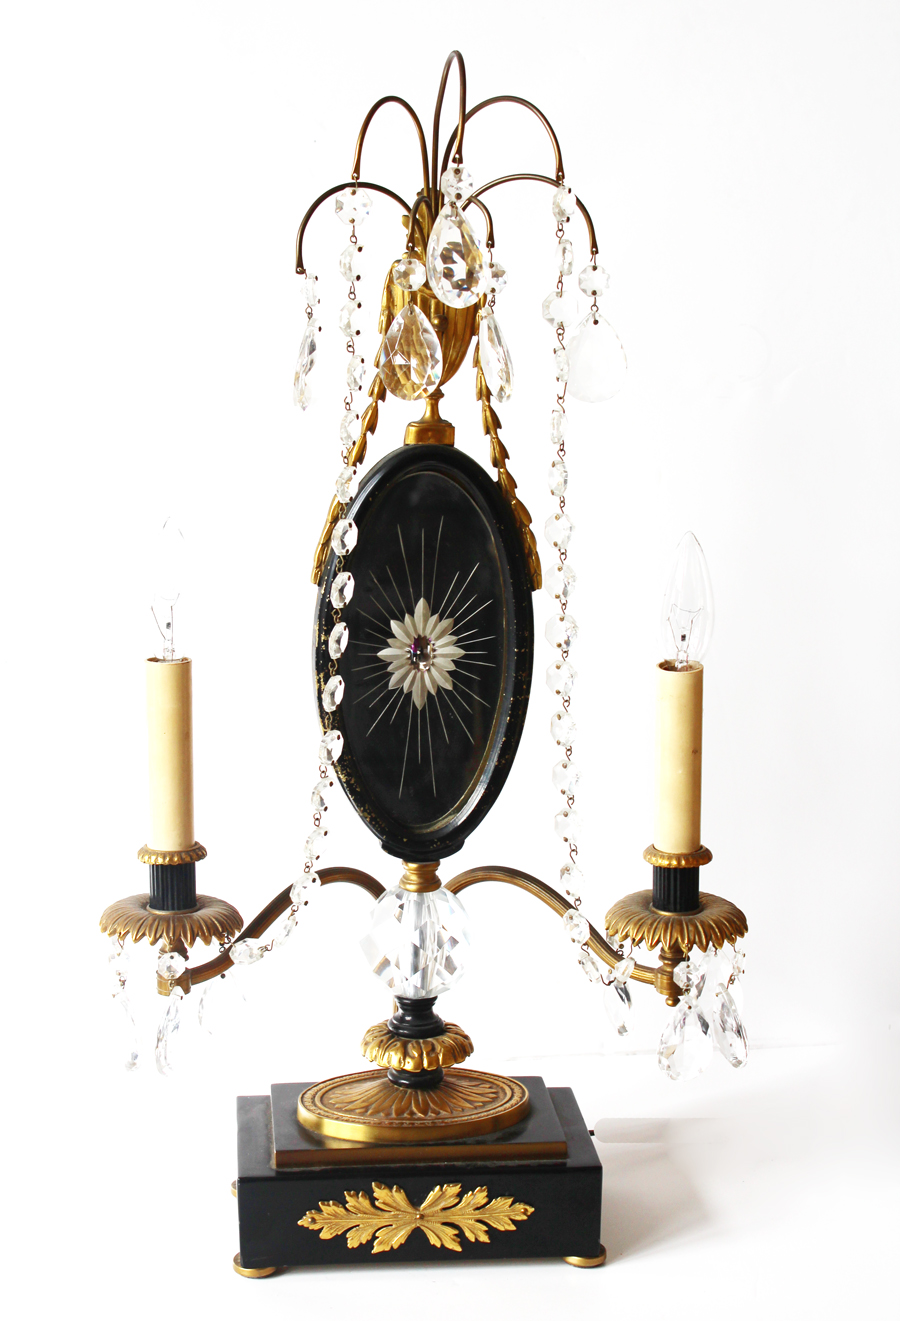 Antique Bronze Ormolu & Crystal Candelabra Girandole Lamp